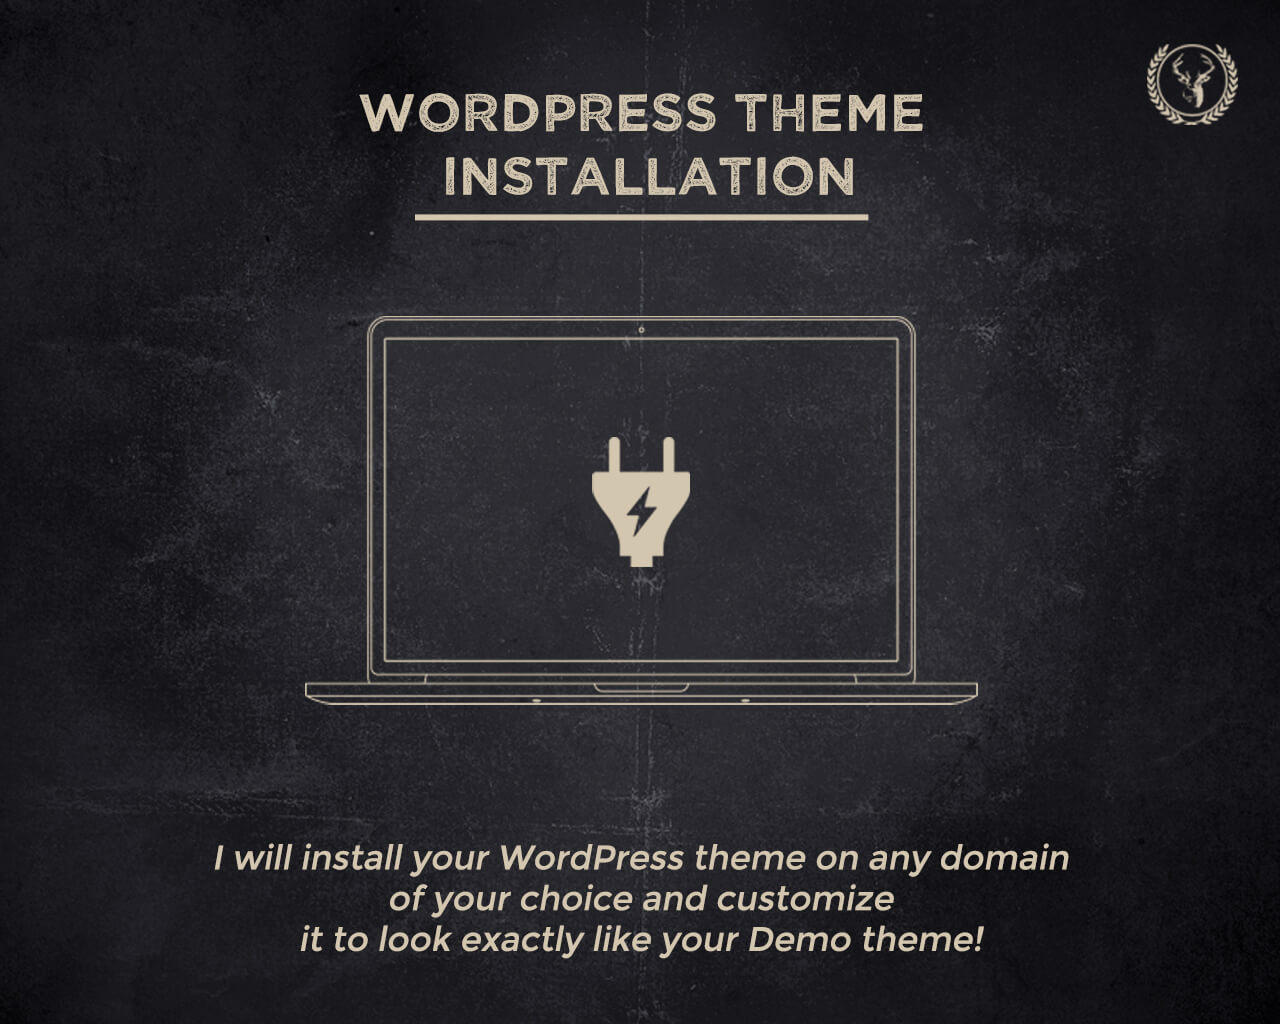 Premium WordPress Theme Installation by themesawesome - 65479